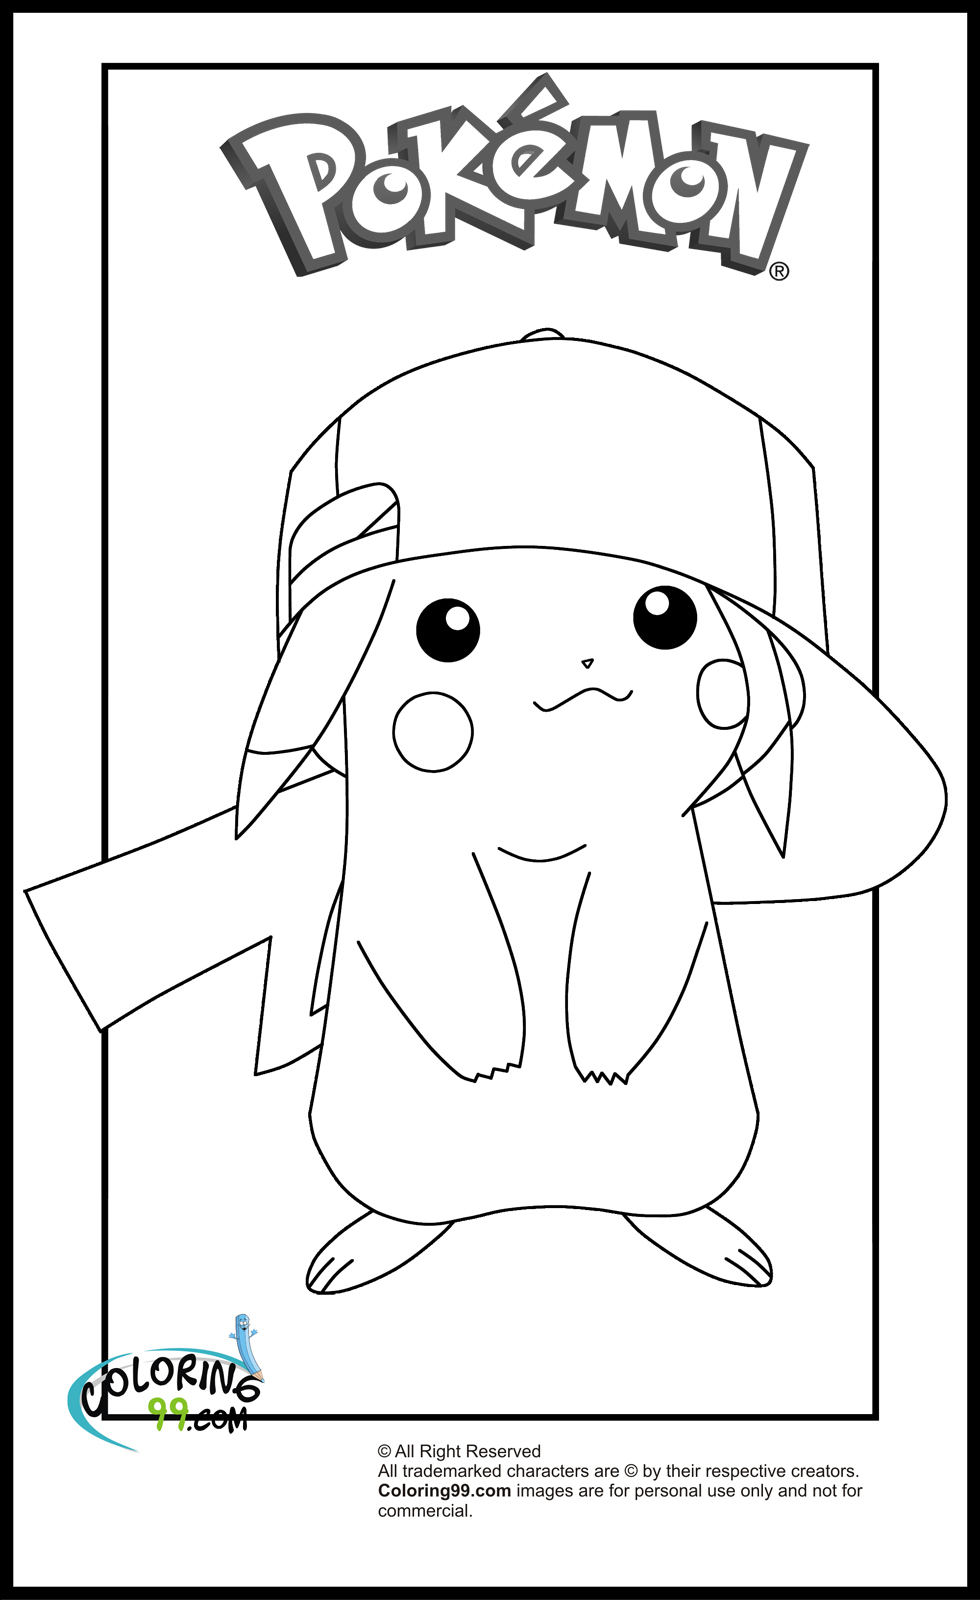 Pikachu coloring pages minister coloring for Cute pokemon coloring pages